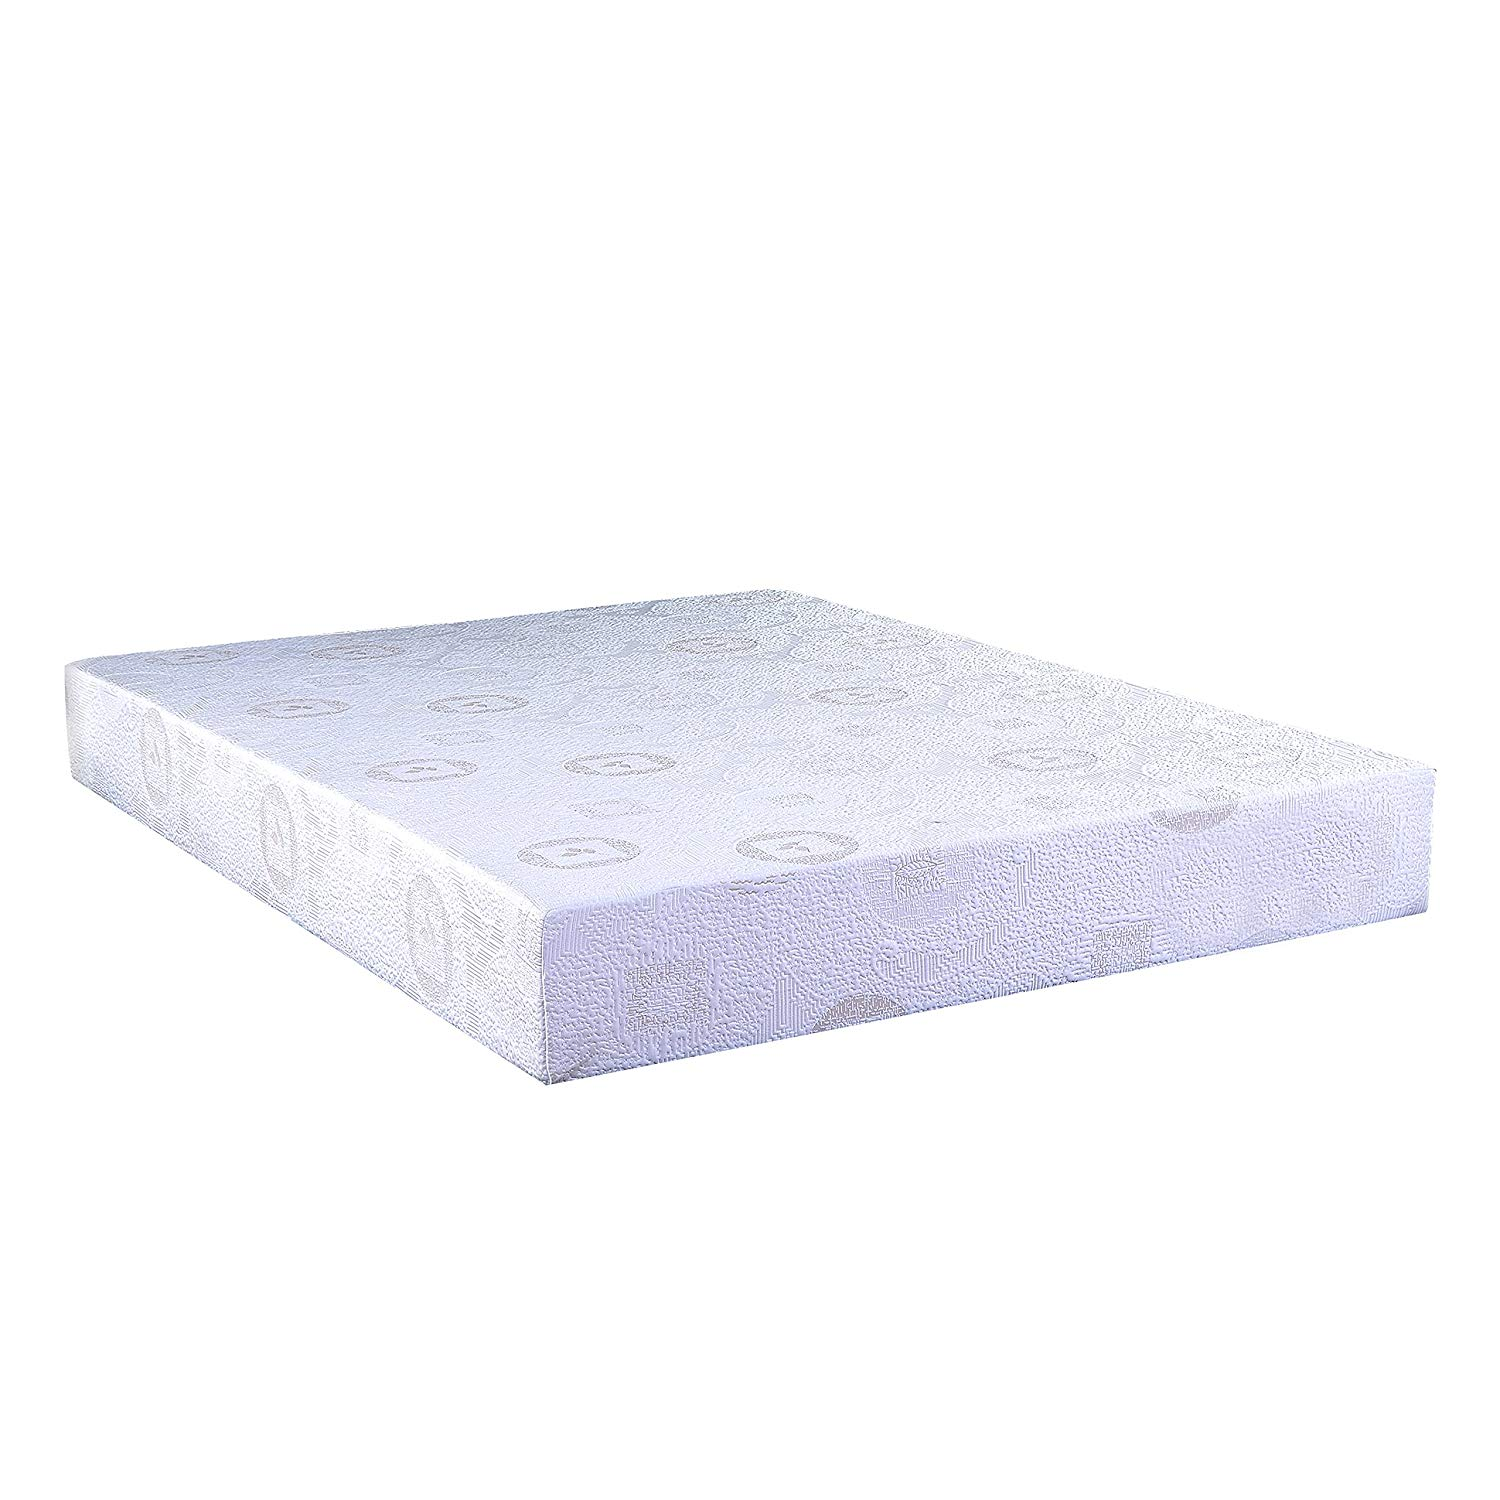 "10"" Full  Green Tea Infused Polyester Memory Foam Mattress"